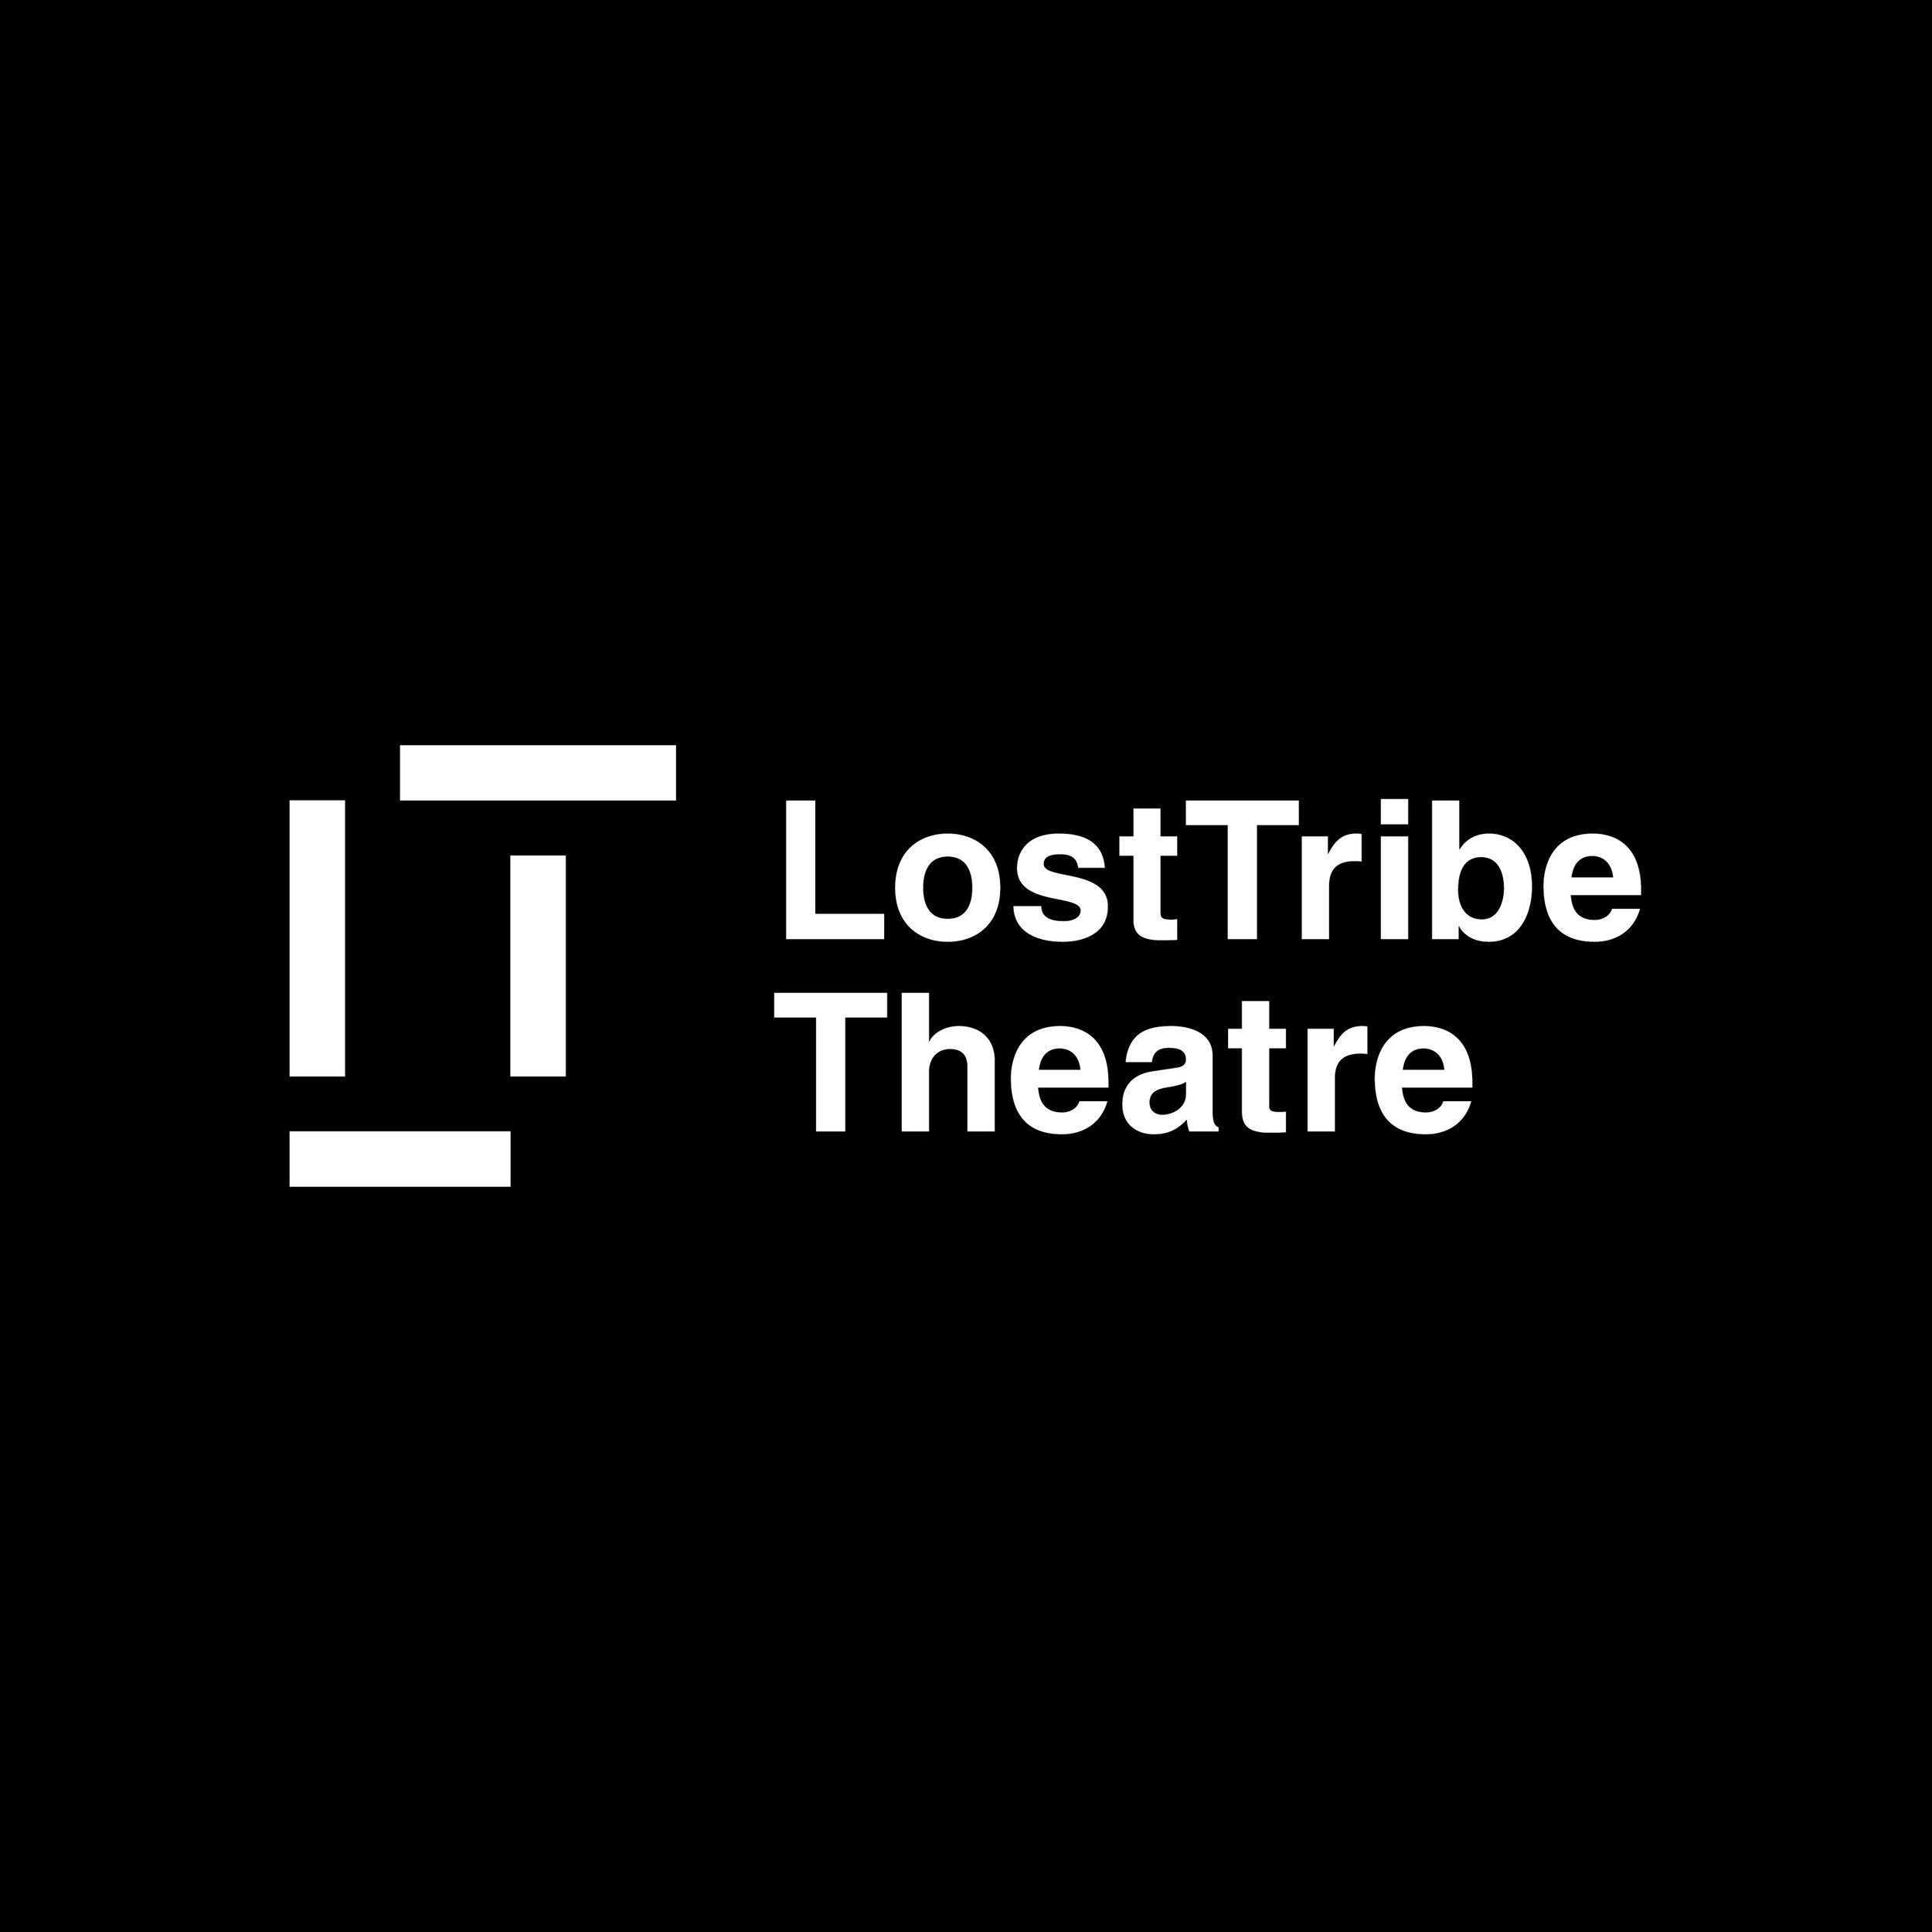 LostTribe_Theatre_1.jpg